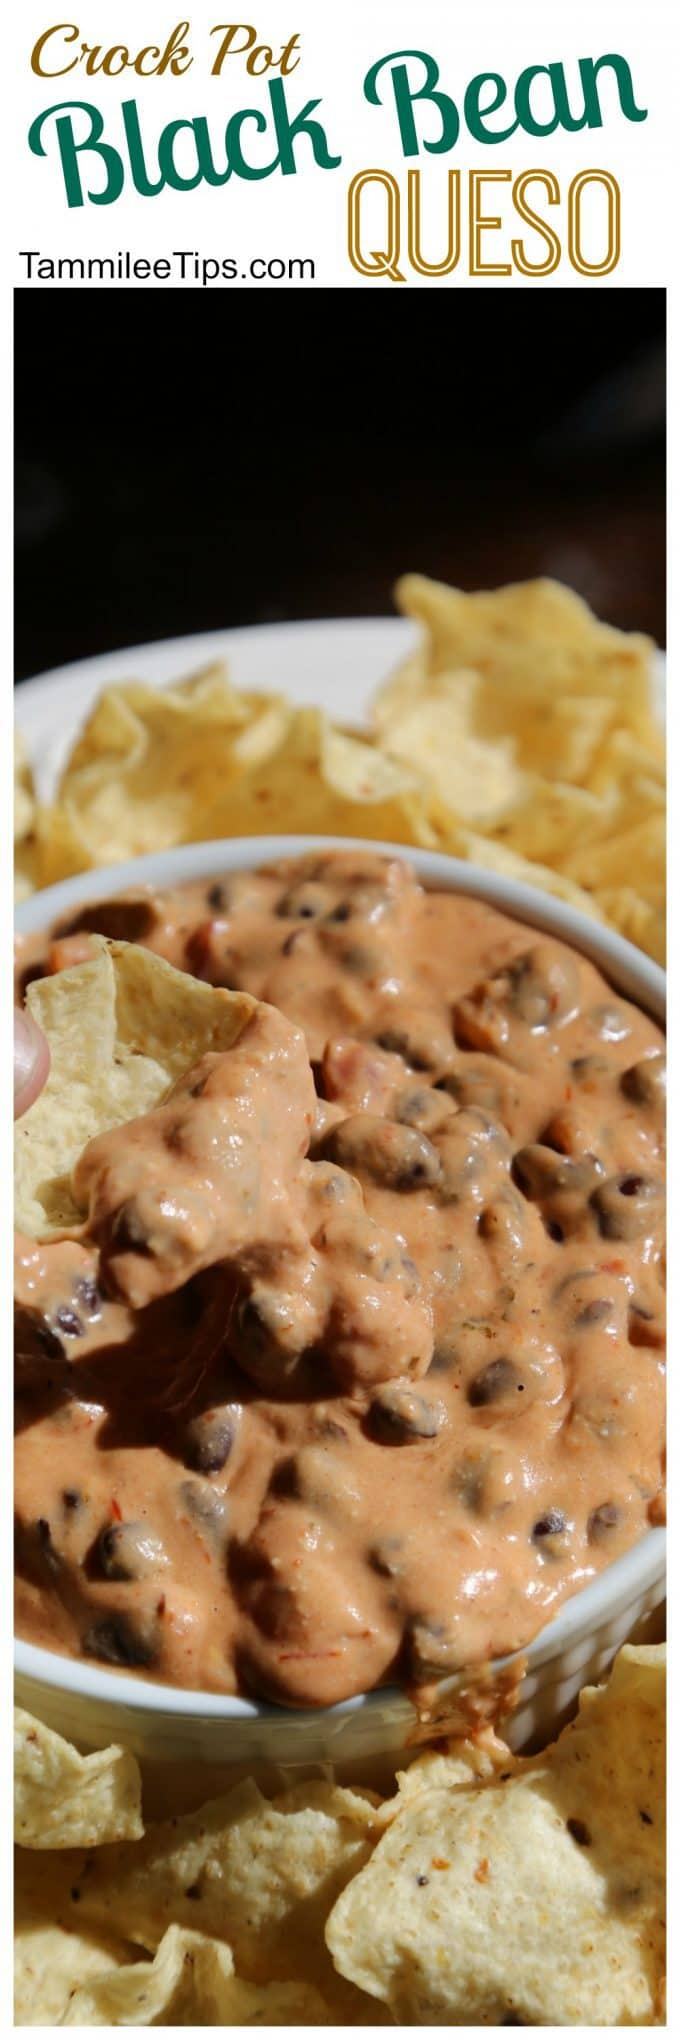 Easy Crockpot Black Bean Queso Dip Recipe! So easy to make in the slow cooker! Perfect for Super Bowl football parties! Velveeta and Cream Cheese make this Queso rich and creamy!